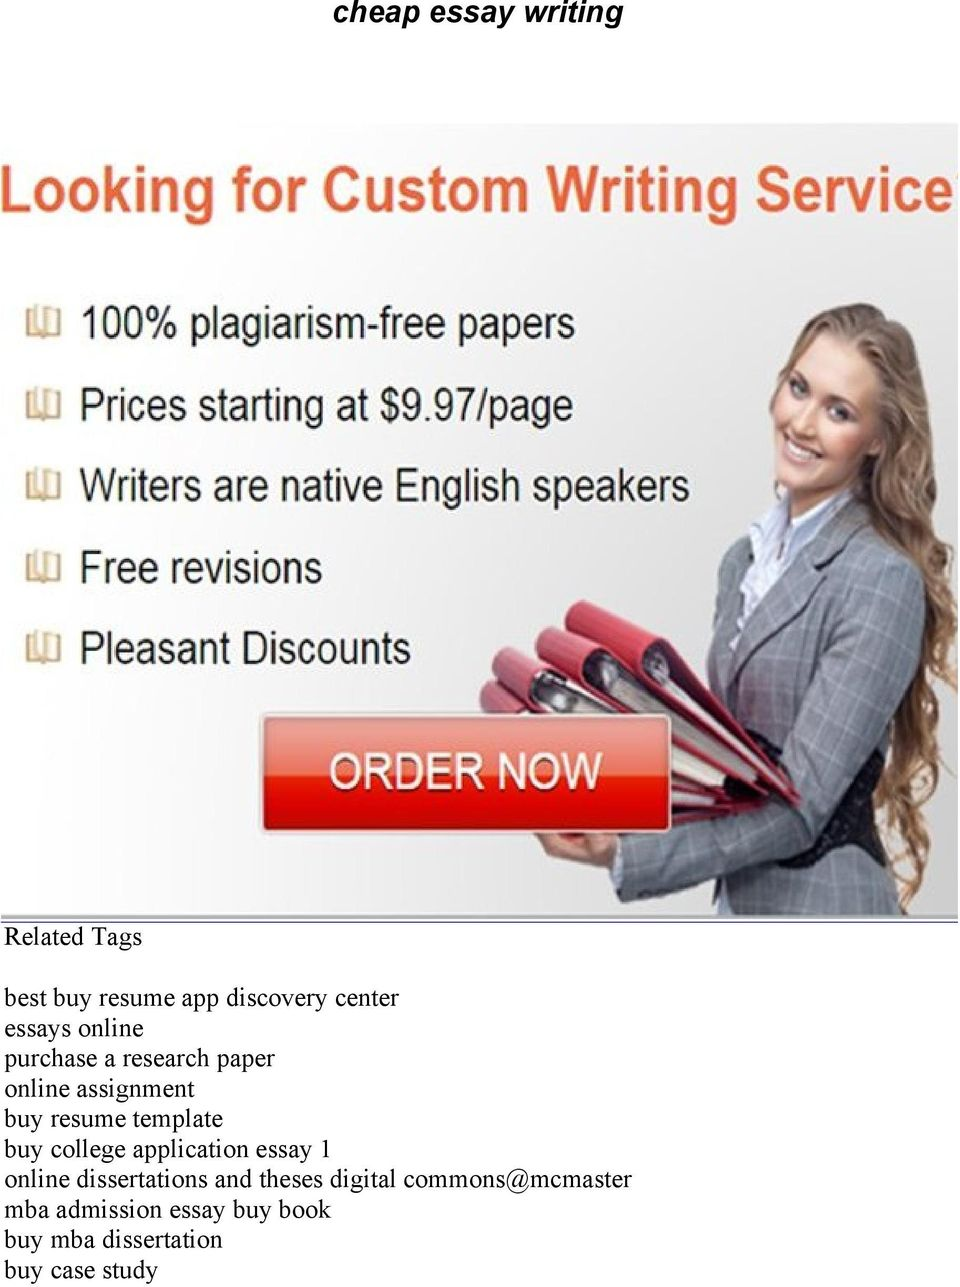 template buy college application essay 1 online dissertations and theses